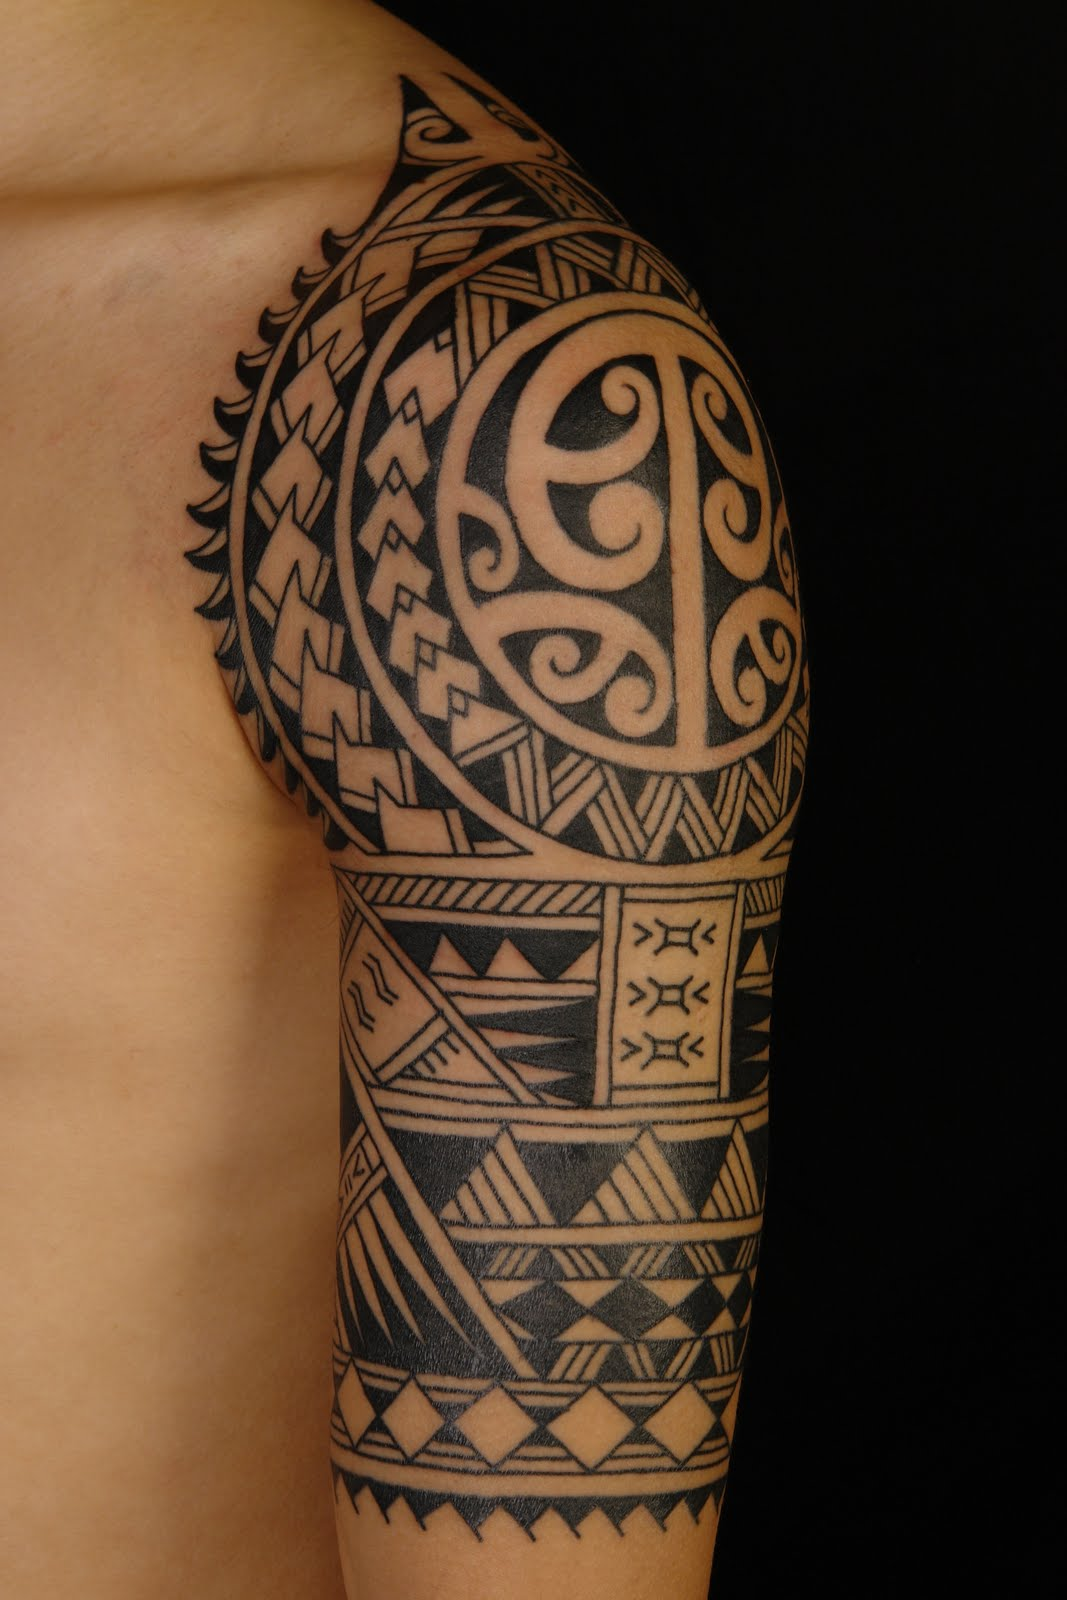 e0605beb9 Polynesian Tattoos Designs, Ideas and Meaning | Tattoos For You